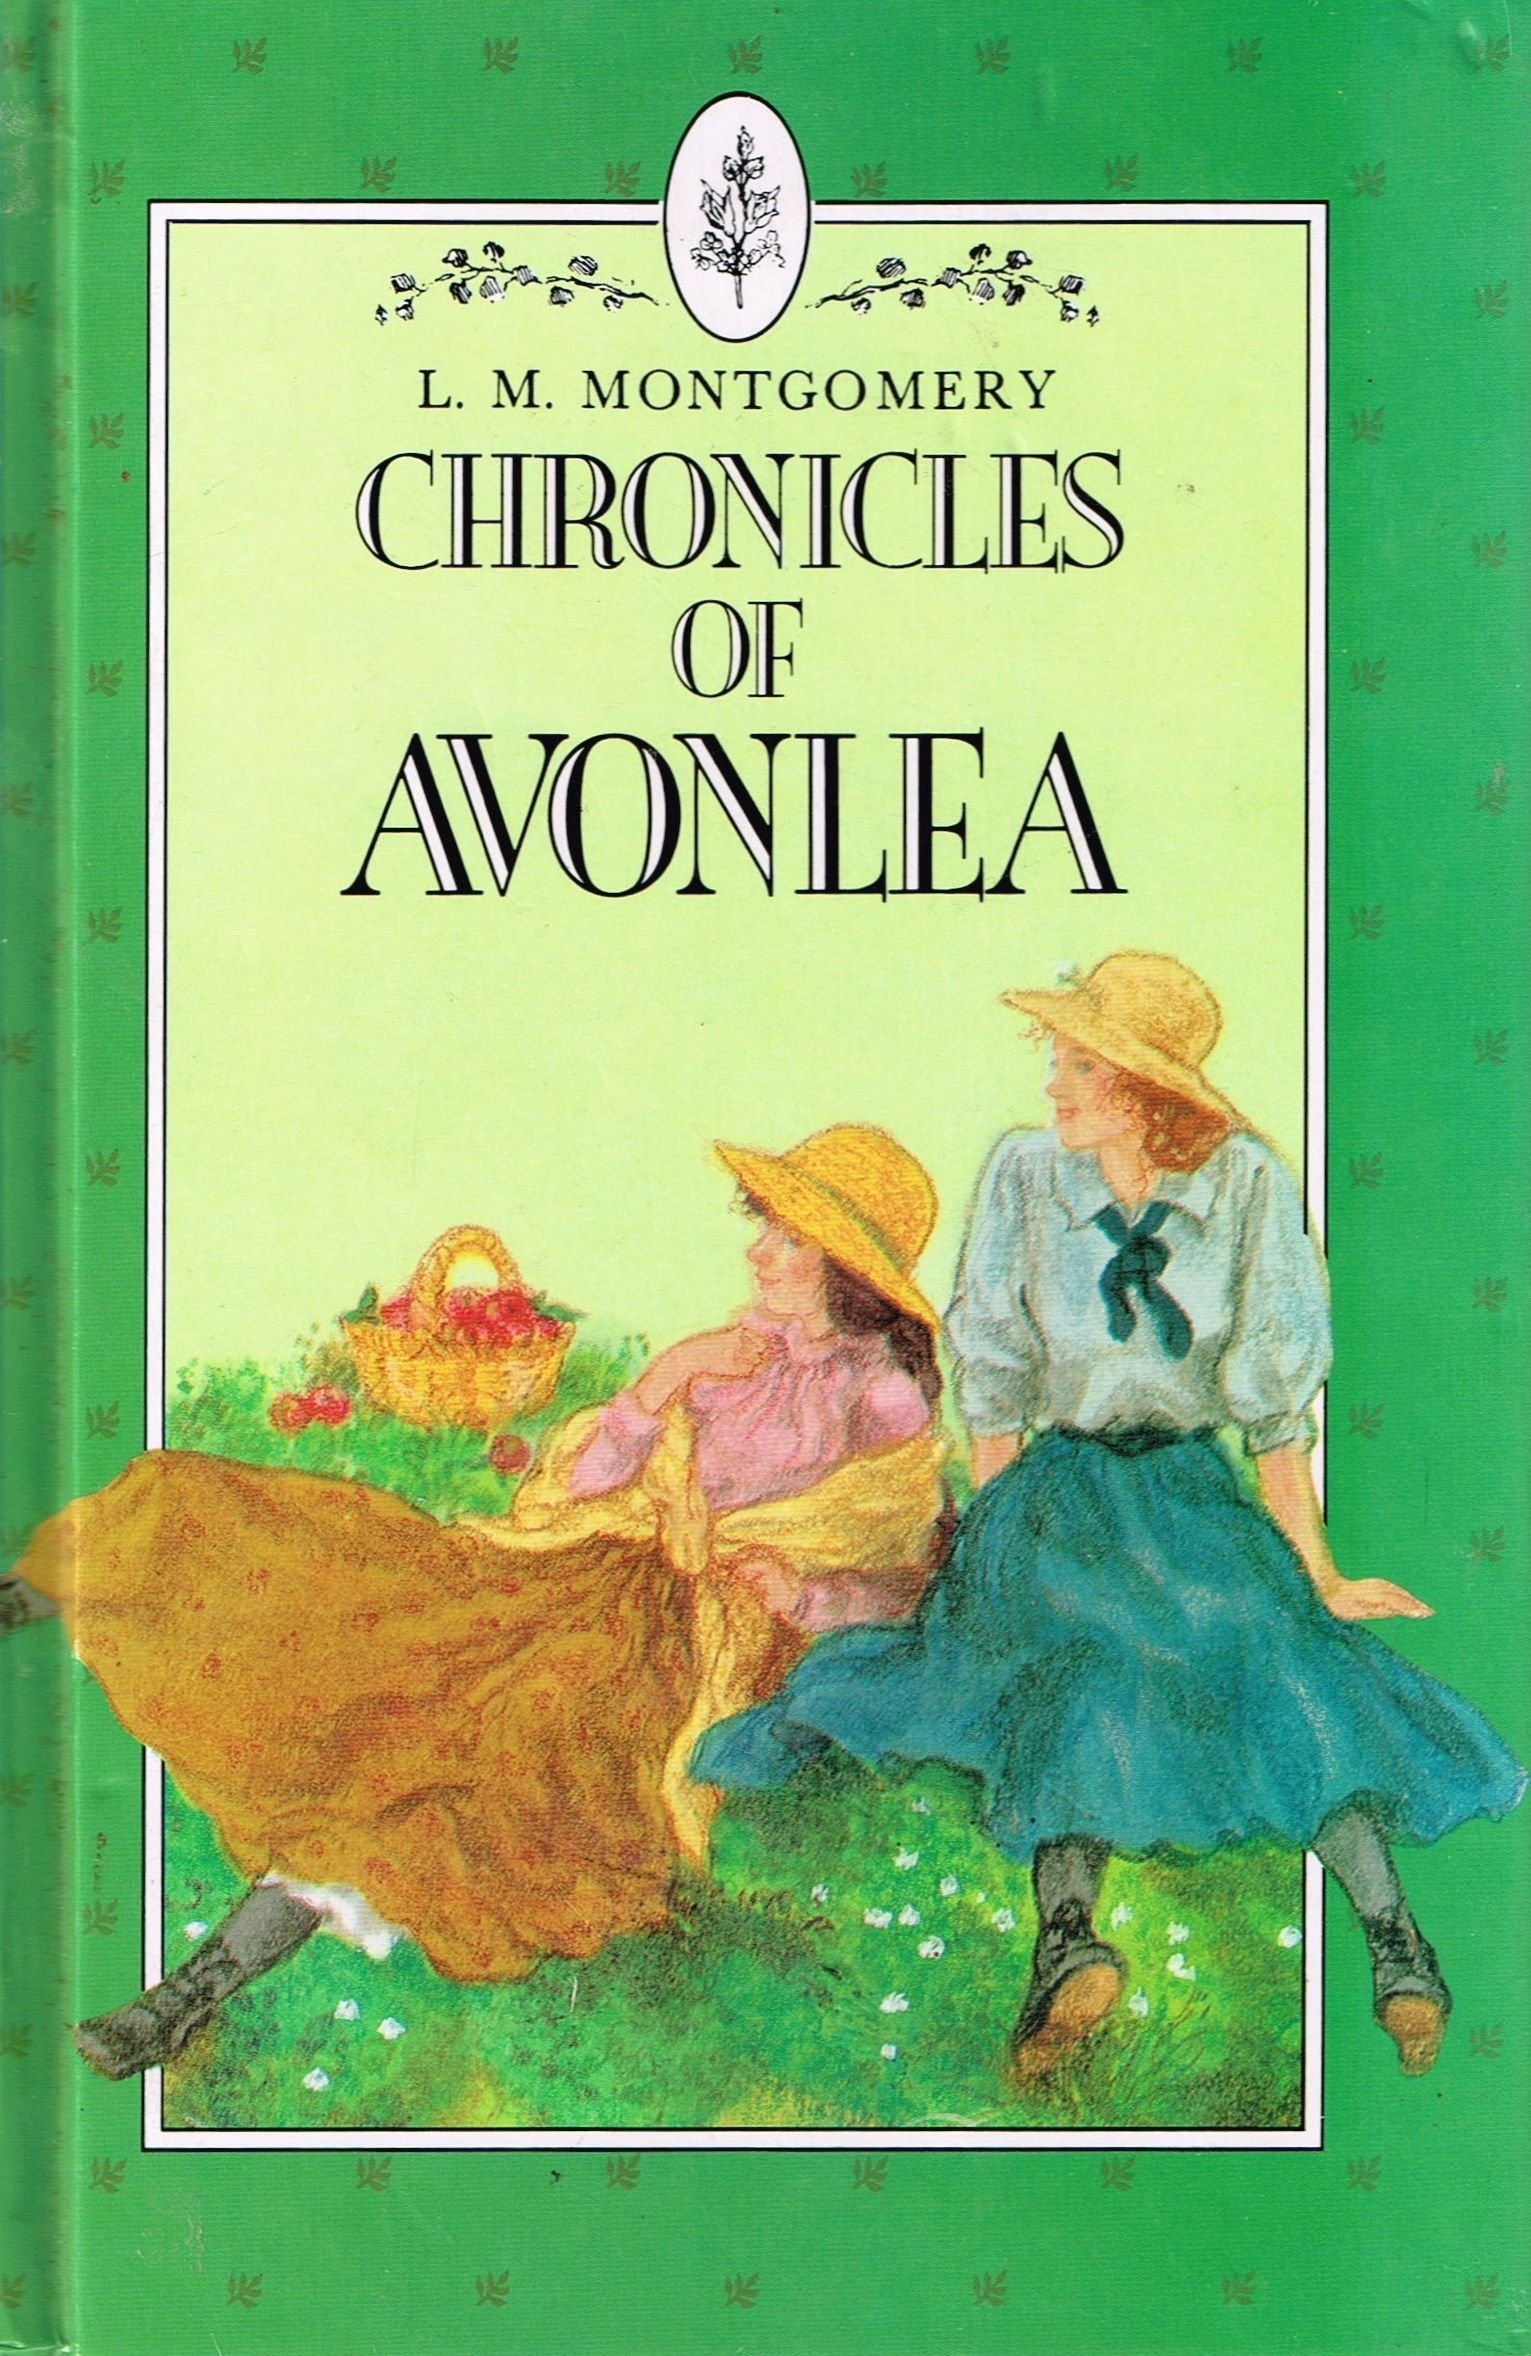 Chronicles Of Avonlea 1912 Cover 1991 By LM Montgomery Good Collection Short Stories Finished 13th April 2016 Bedtime Reading Have Read Several